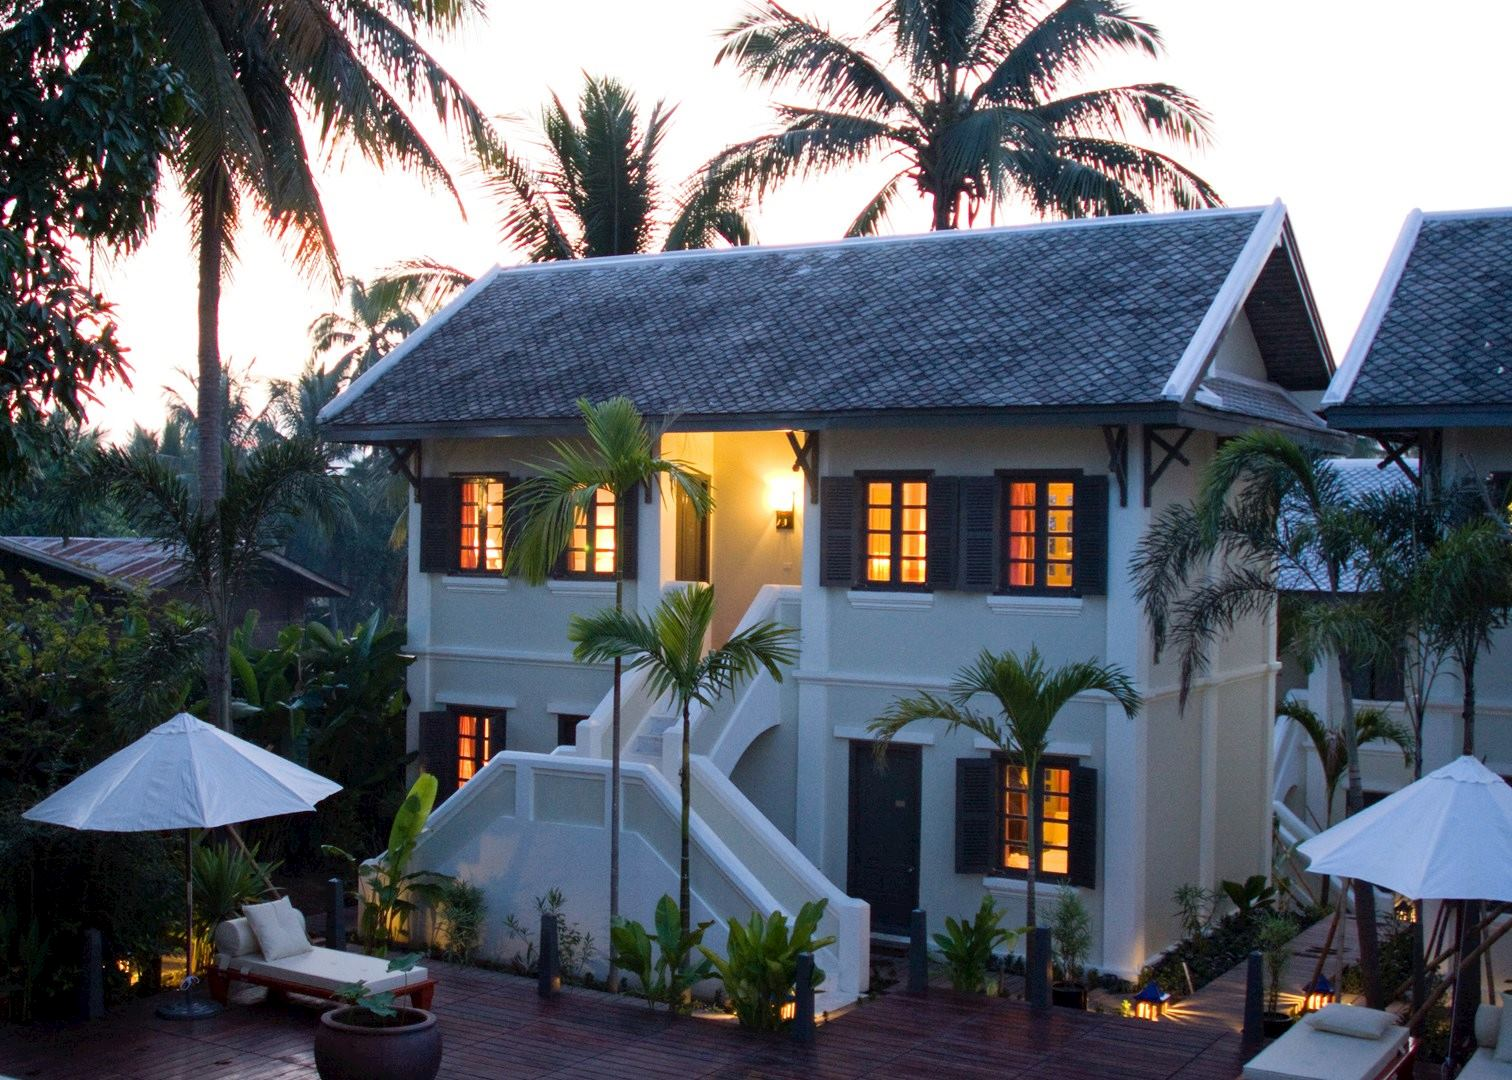 Villa maly hotels in luang prabang audley travel for Laos hotels 5 star